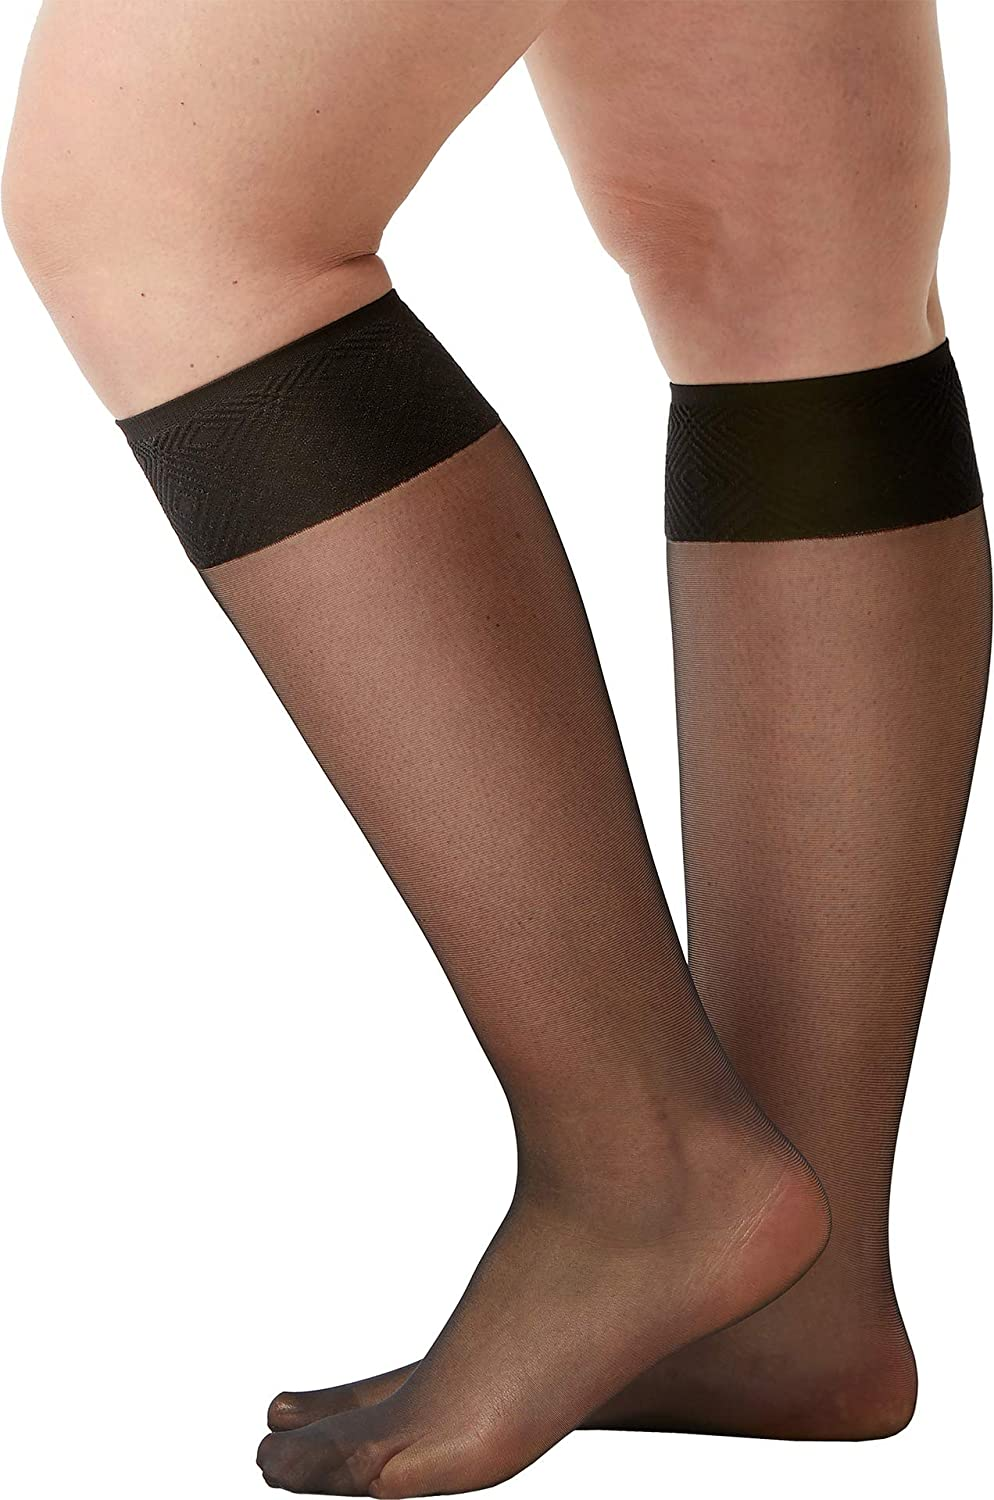 55c522c835e Spanx Women s Sheer Hi-Knee Socks - Two Pack! Black One Size at Amazon  Women s Clothing store